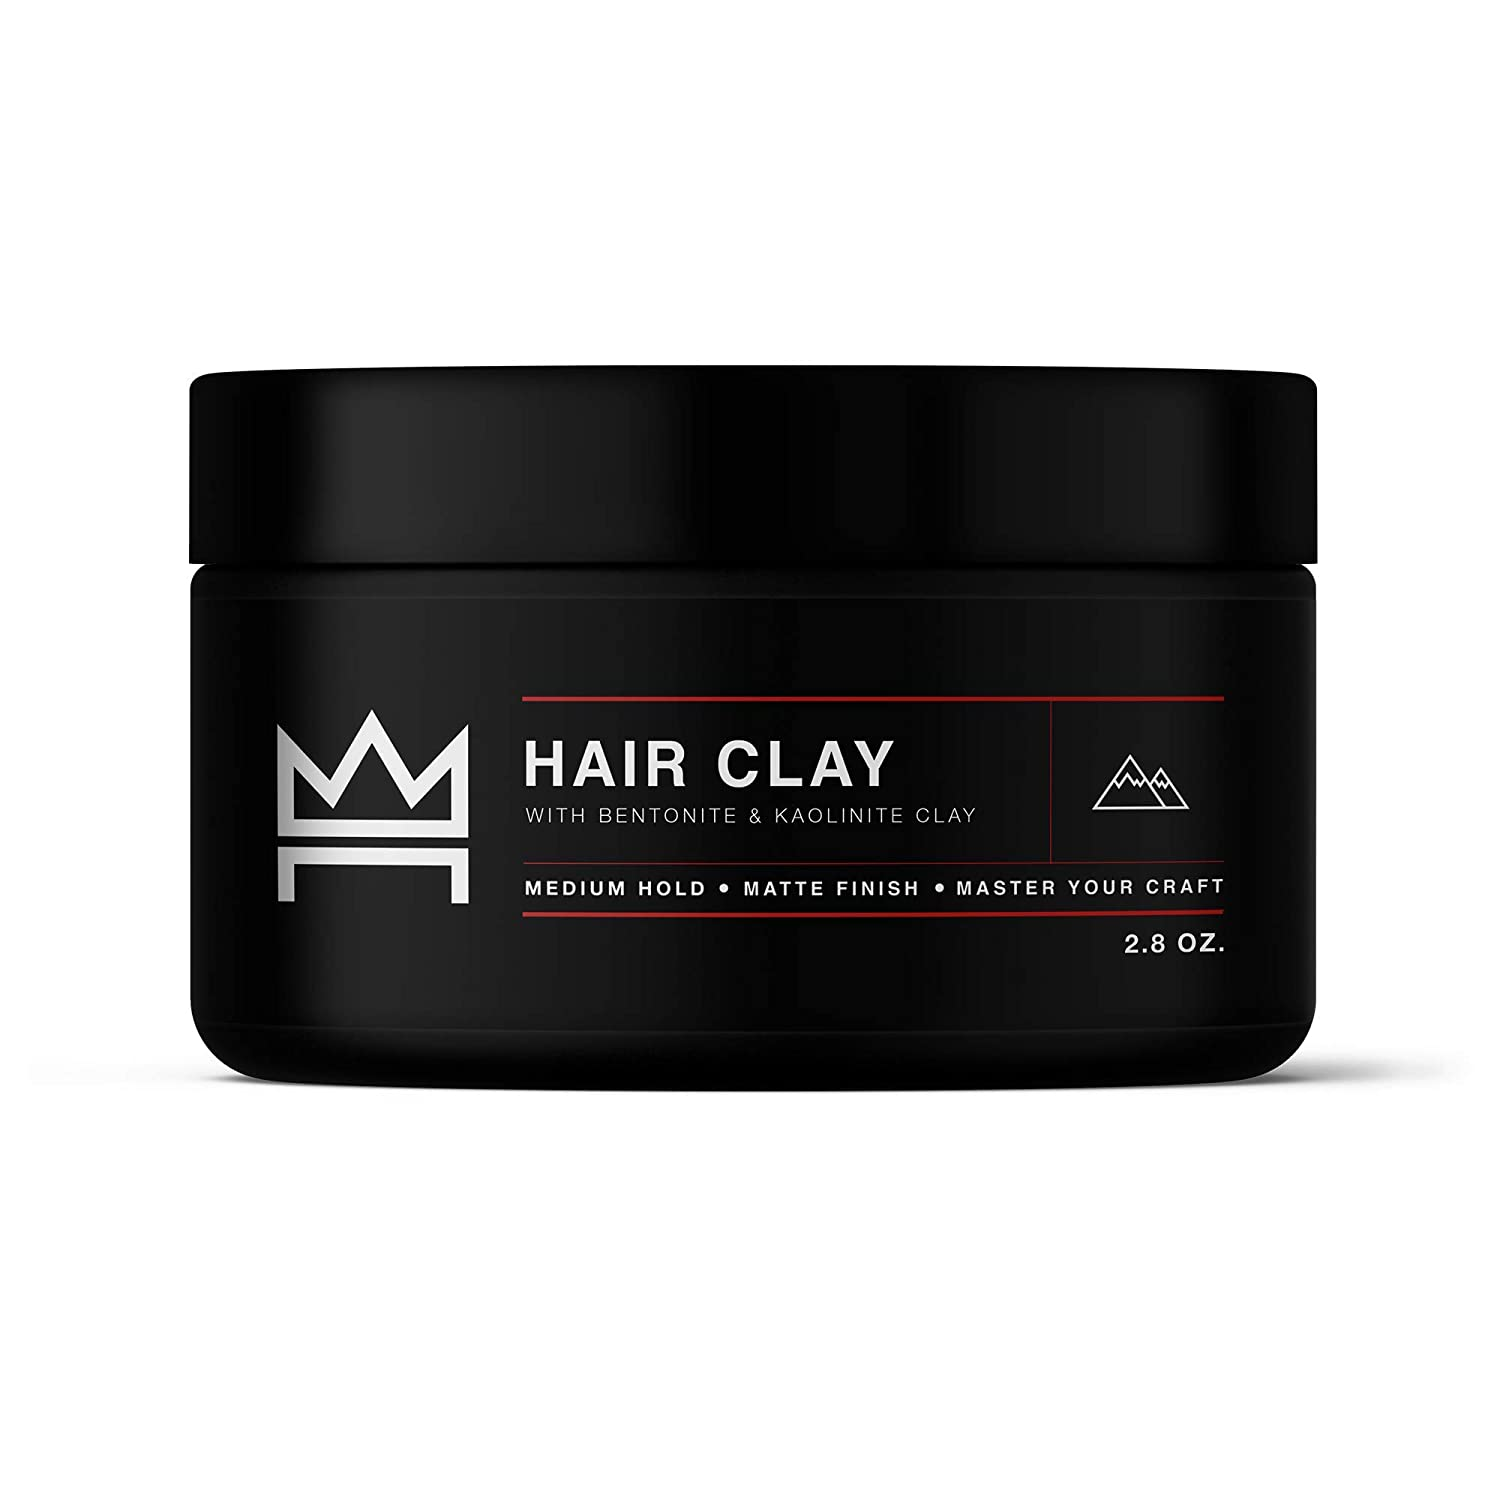 Hair Craft Co. Clay Pomade 2.8oz - Shine Free Matte Finish - Medium Hold/Natural Look – Best Men's Styling Product, Barber Approved – Ideal for Textured, Thickened & Modern Hairstyles – Unscented: Beauty